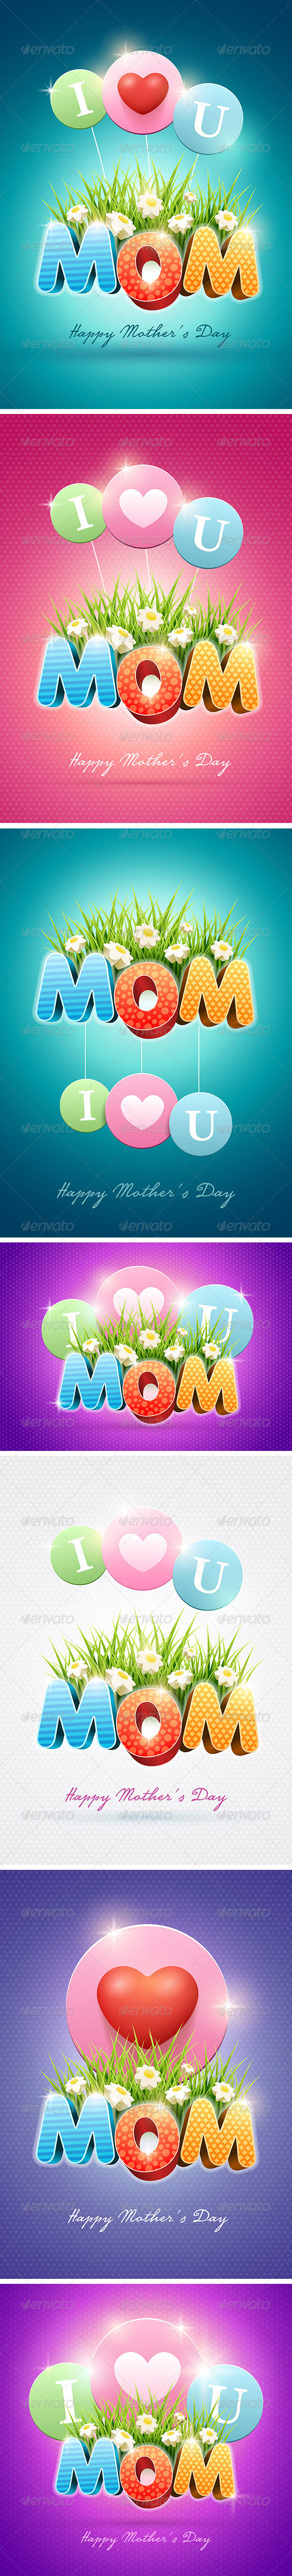 Mother's Day Design Collection